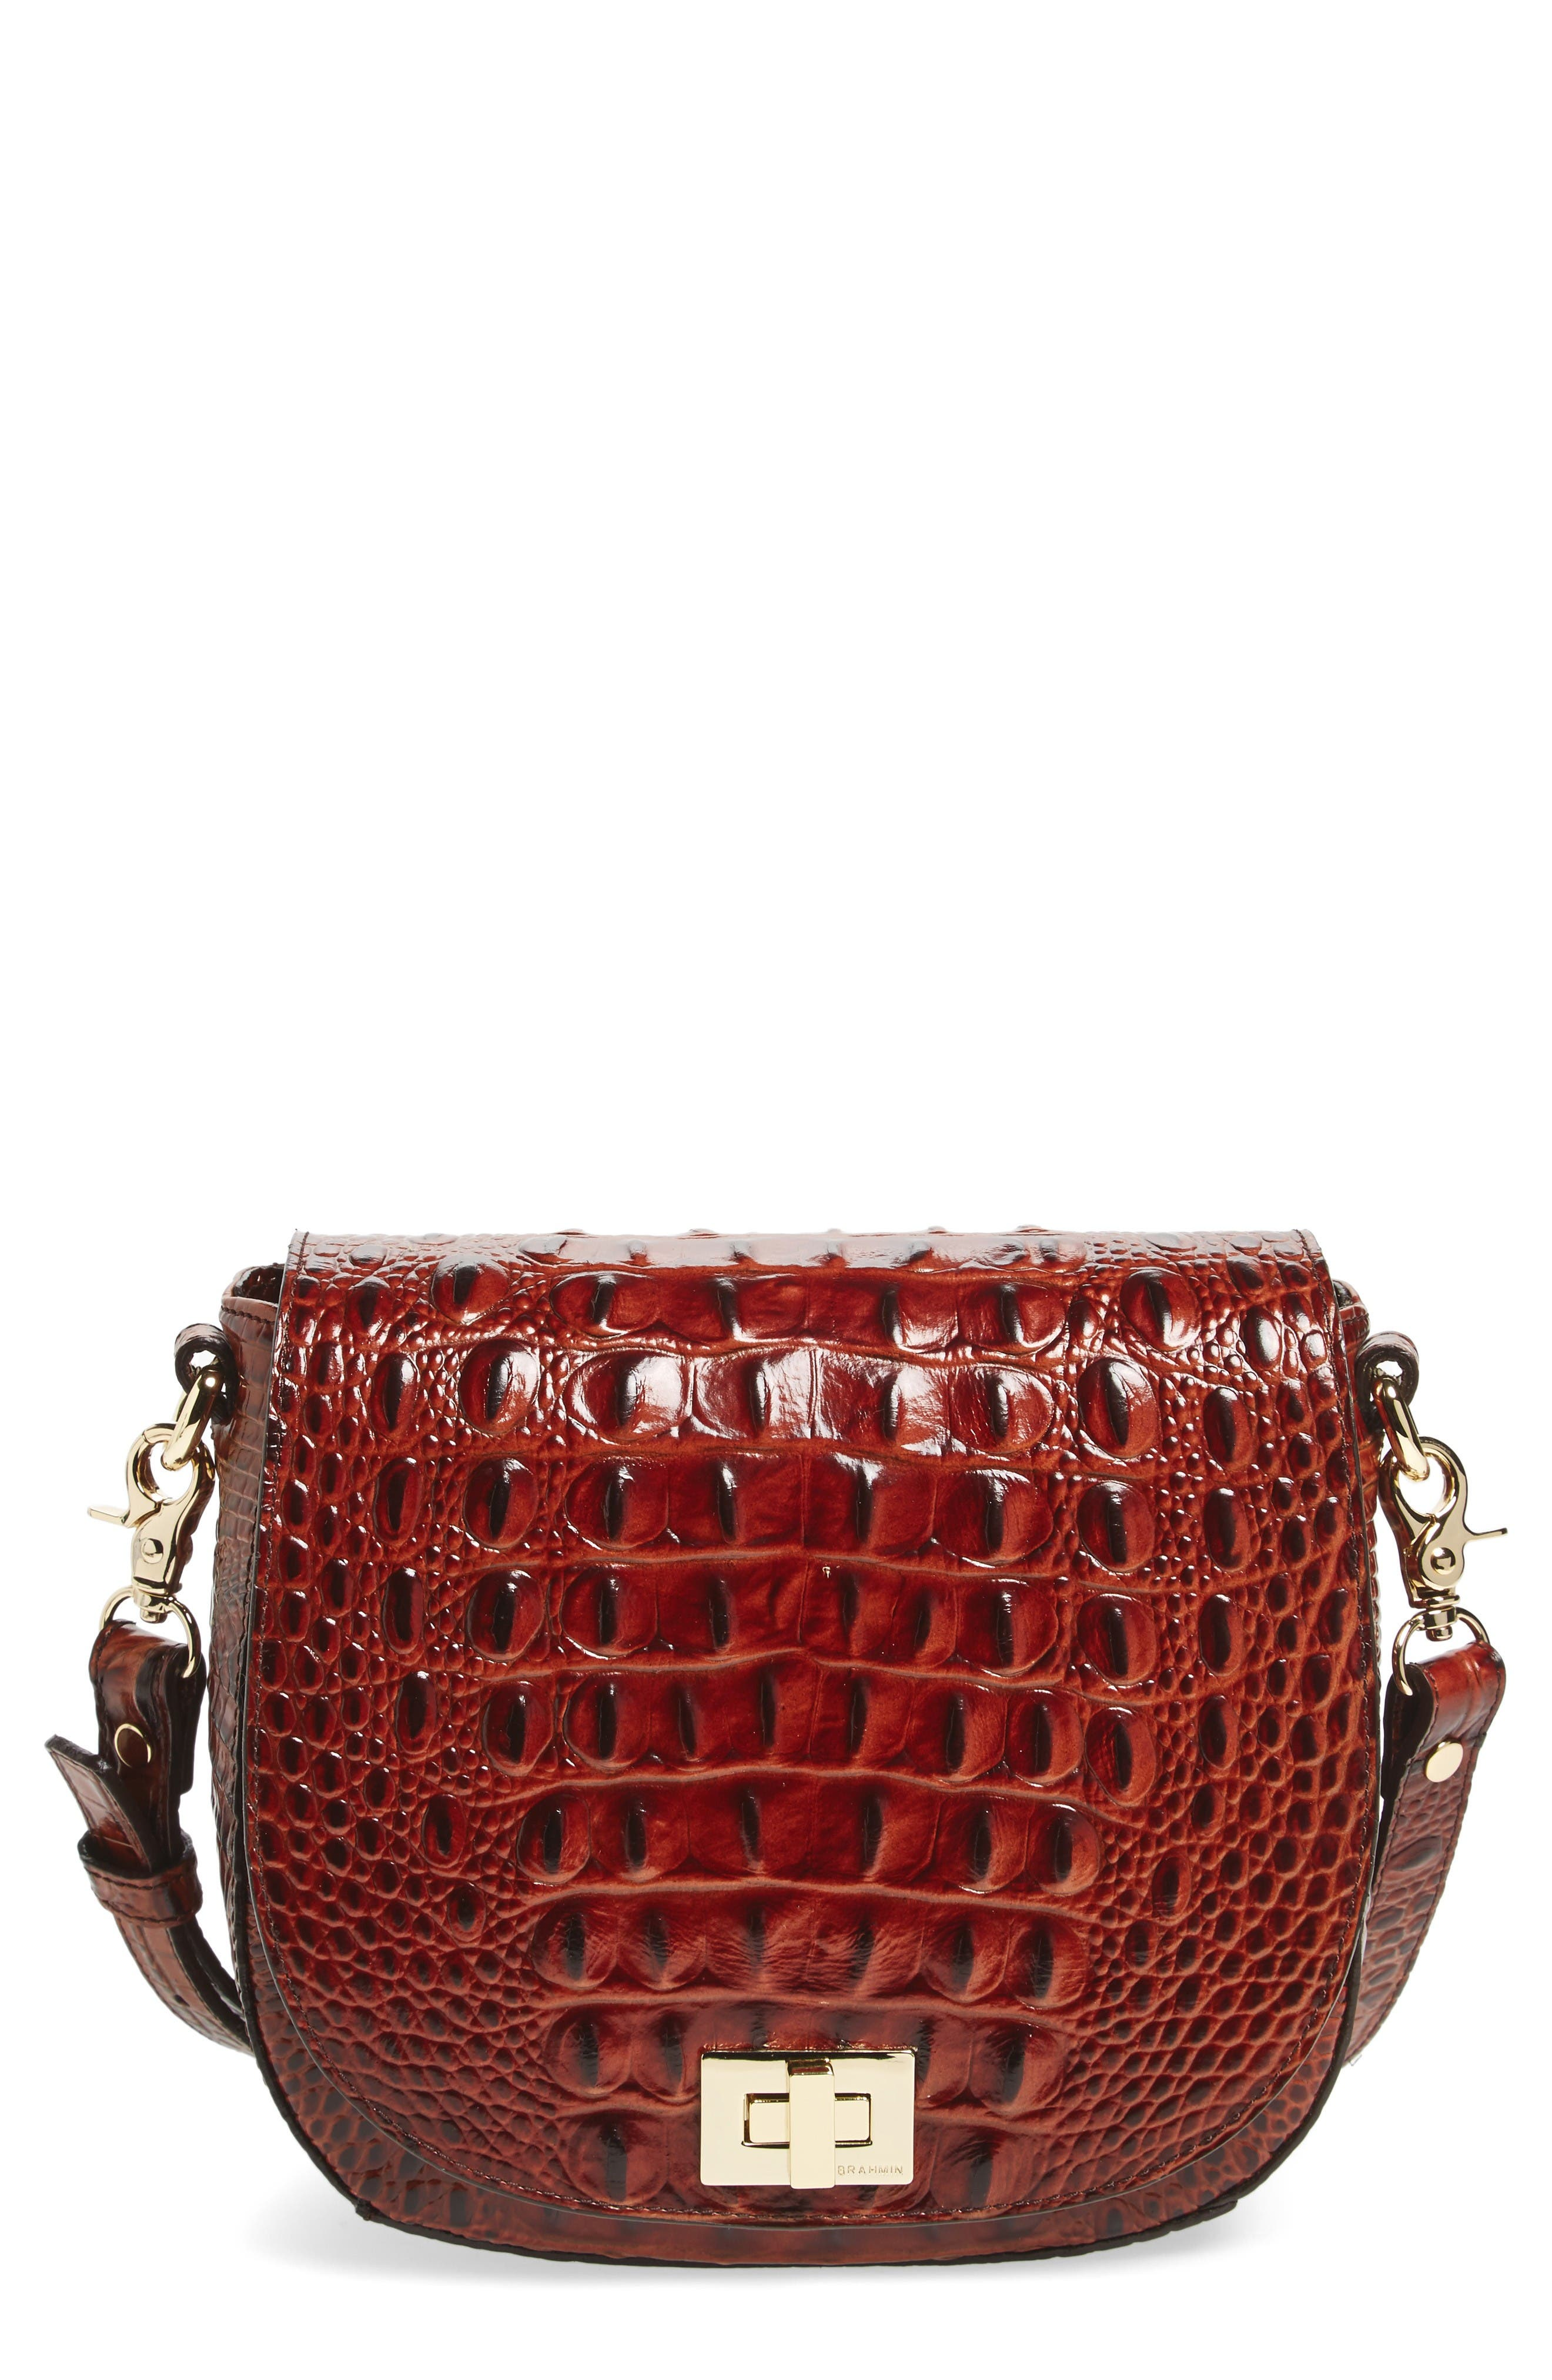 Brahmin Mini Sonny Leather Crossbody Bag